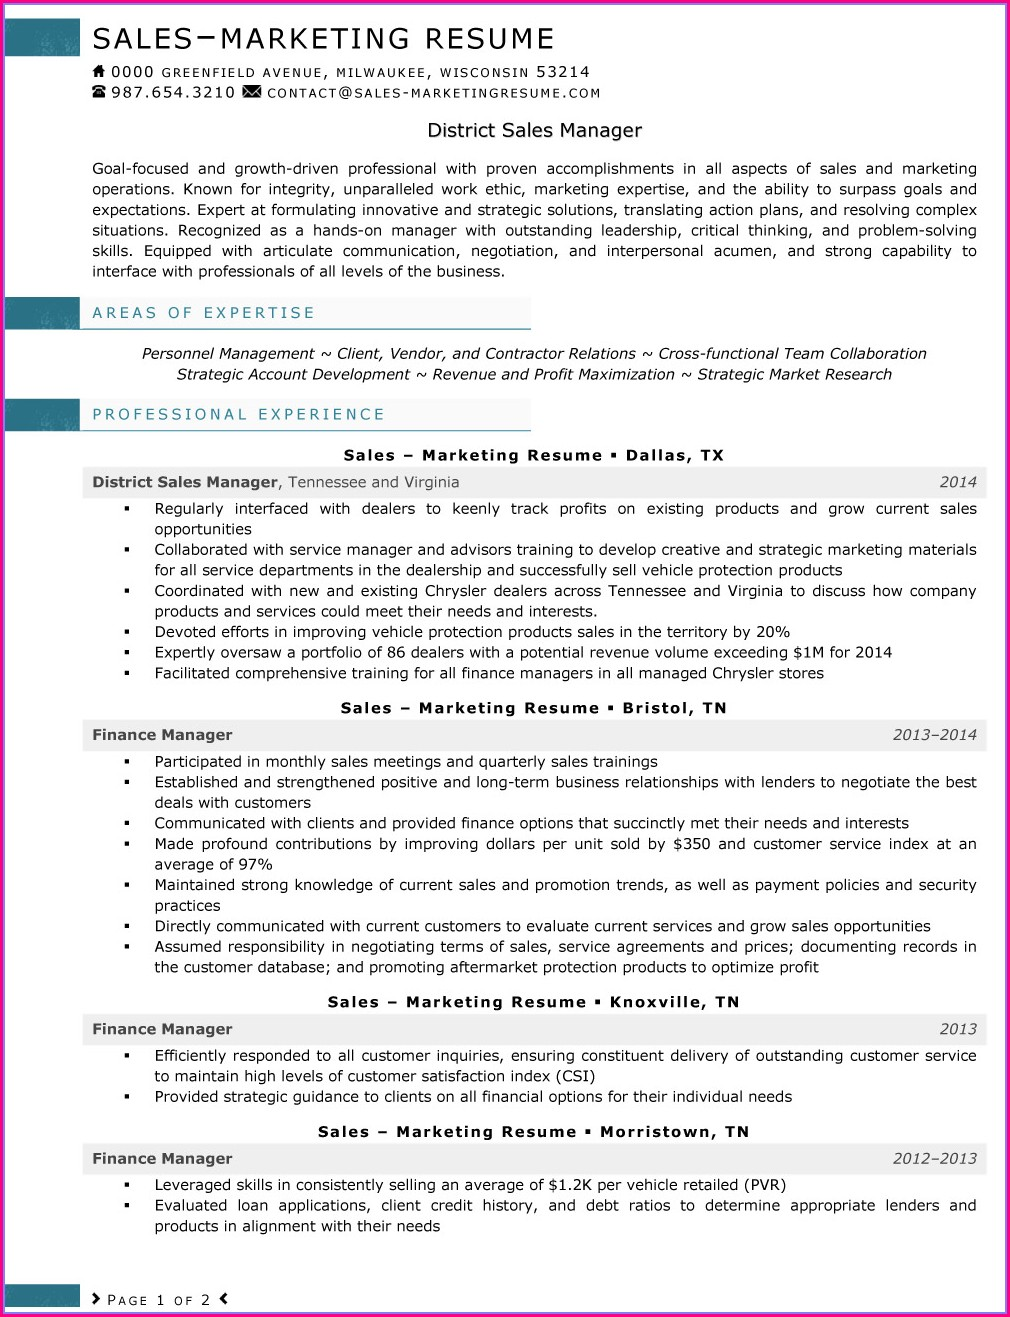 Resume Samples For Marketing And Sales Jobs